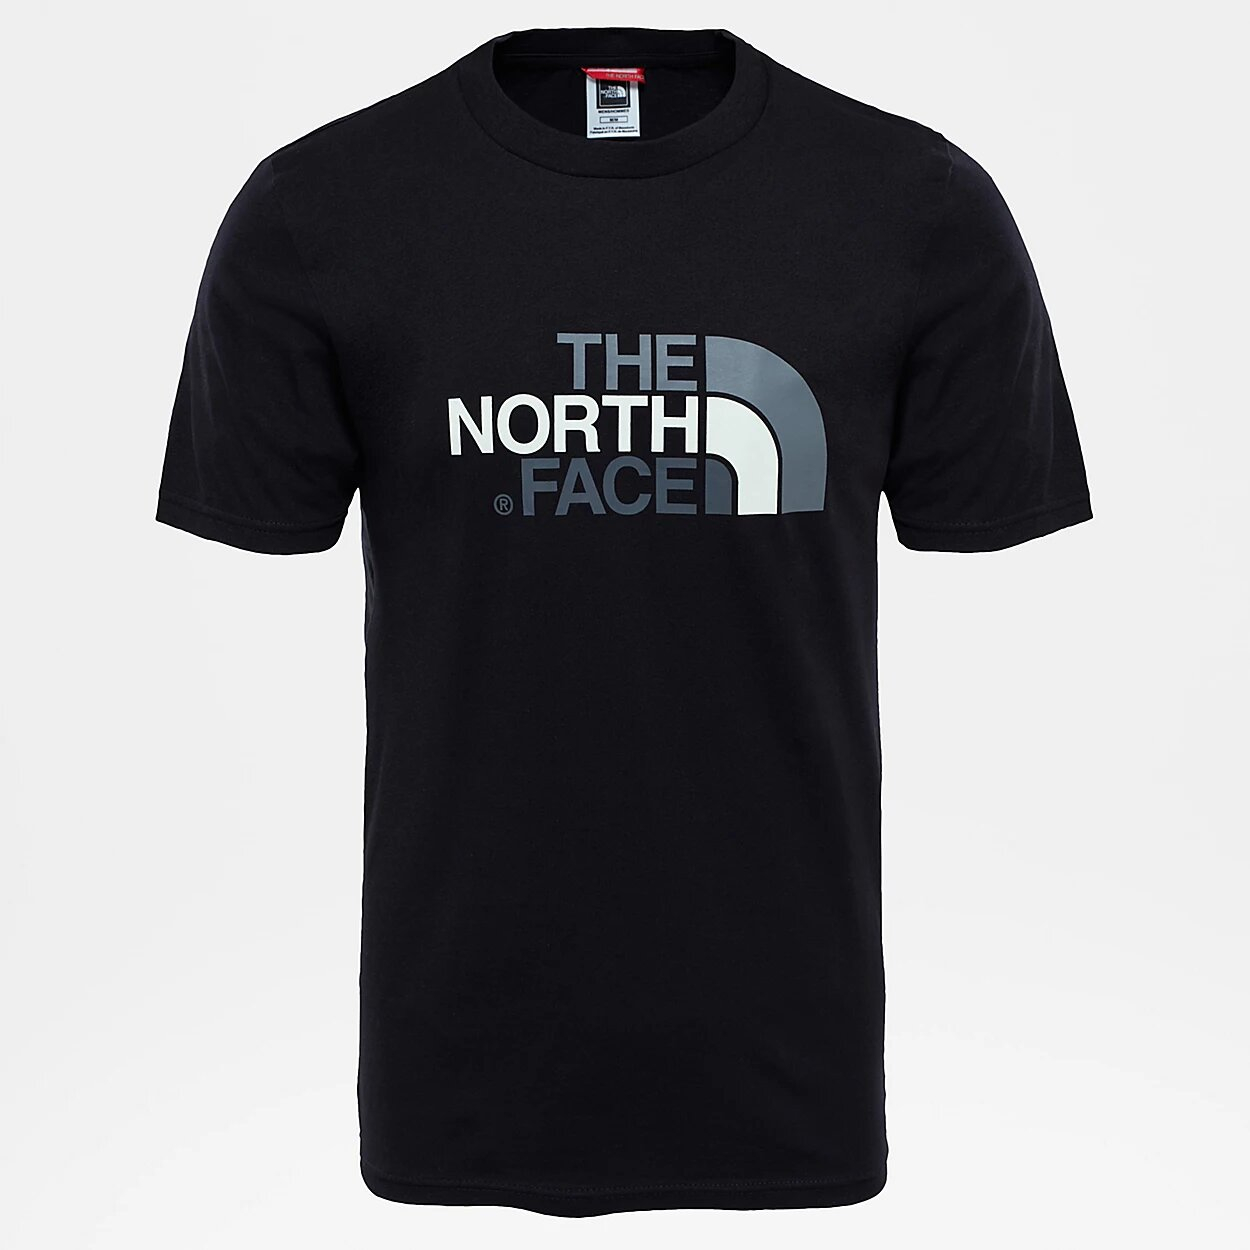 T-Shirt The North Face Easy Tee ( More Colors )